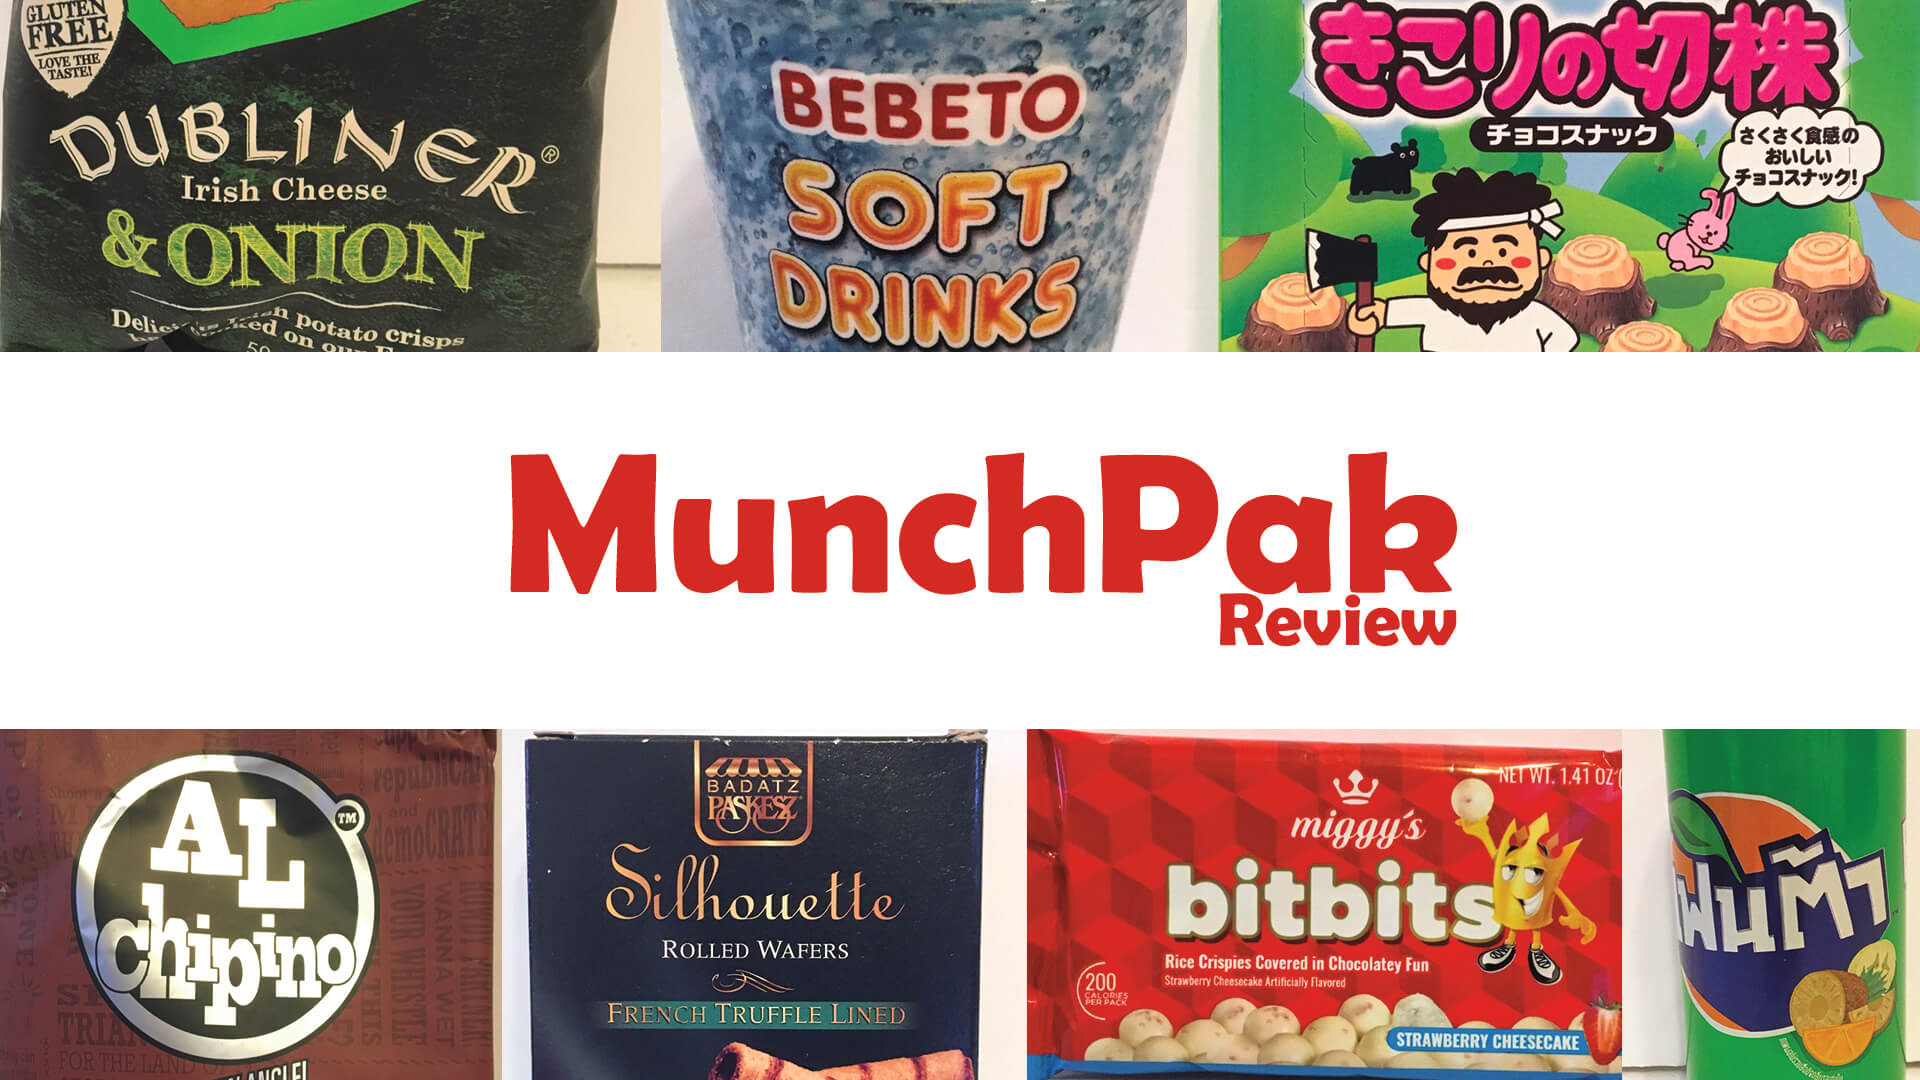 MunchPak:  Snacks from Poland, Ireland, Japan & More - Review